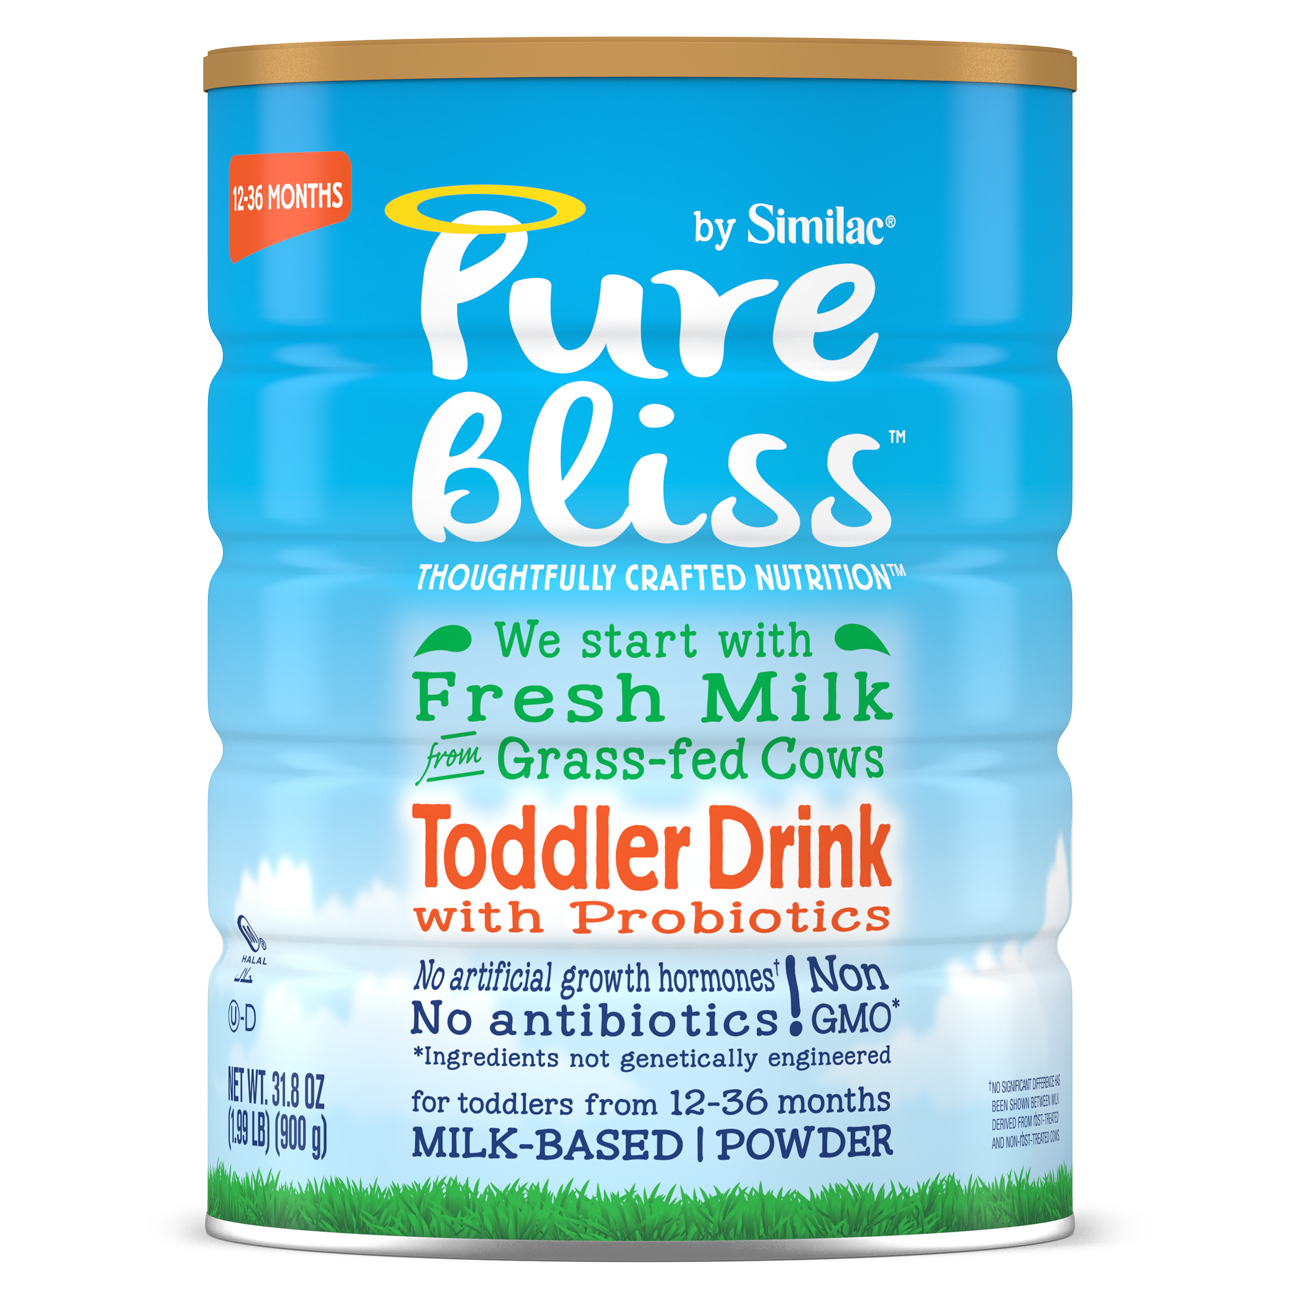 Pure Bliss by Similac Toddler Drink with Probiotics, Starts with Fresh Milk from Grass-Fed Cows, 31.8 ounces